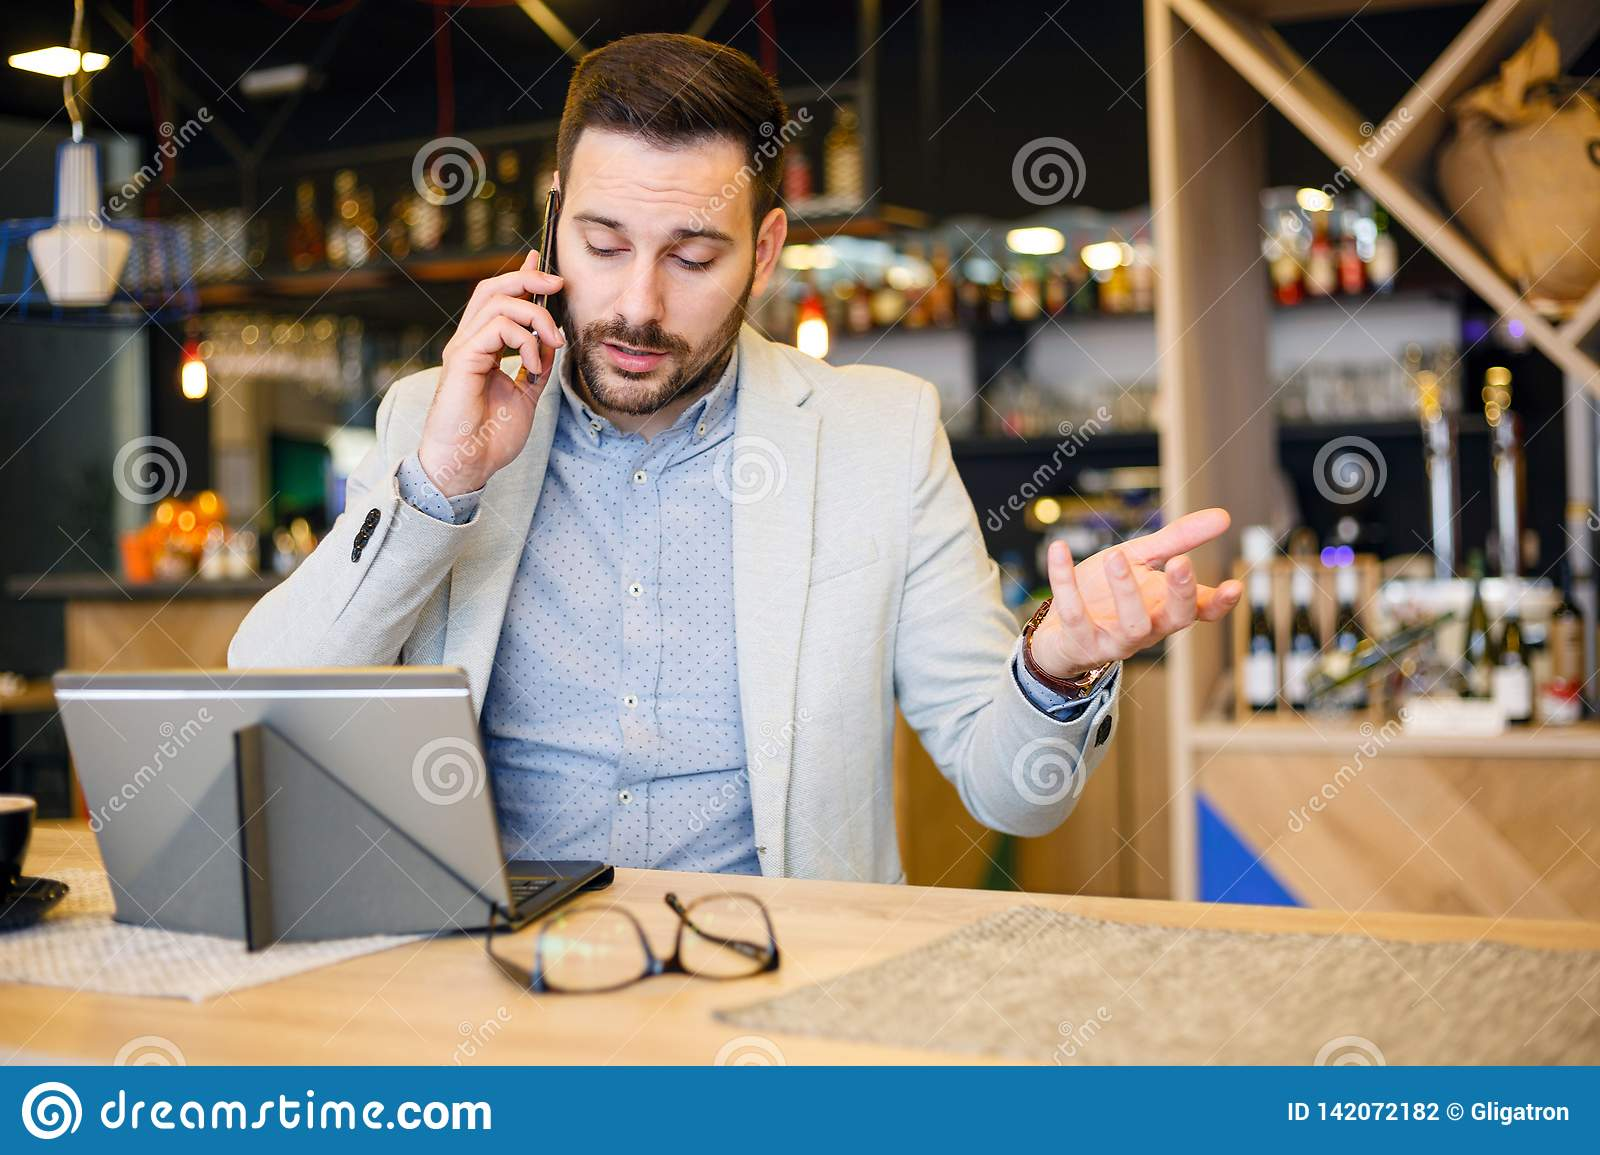 Serious young businessman talking on a phone, working in a cafe